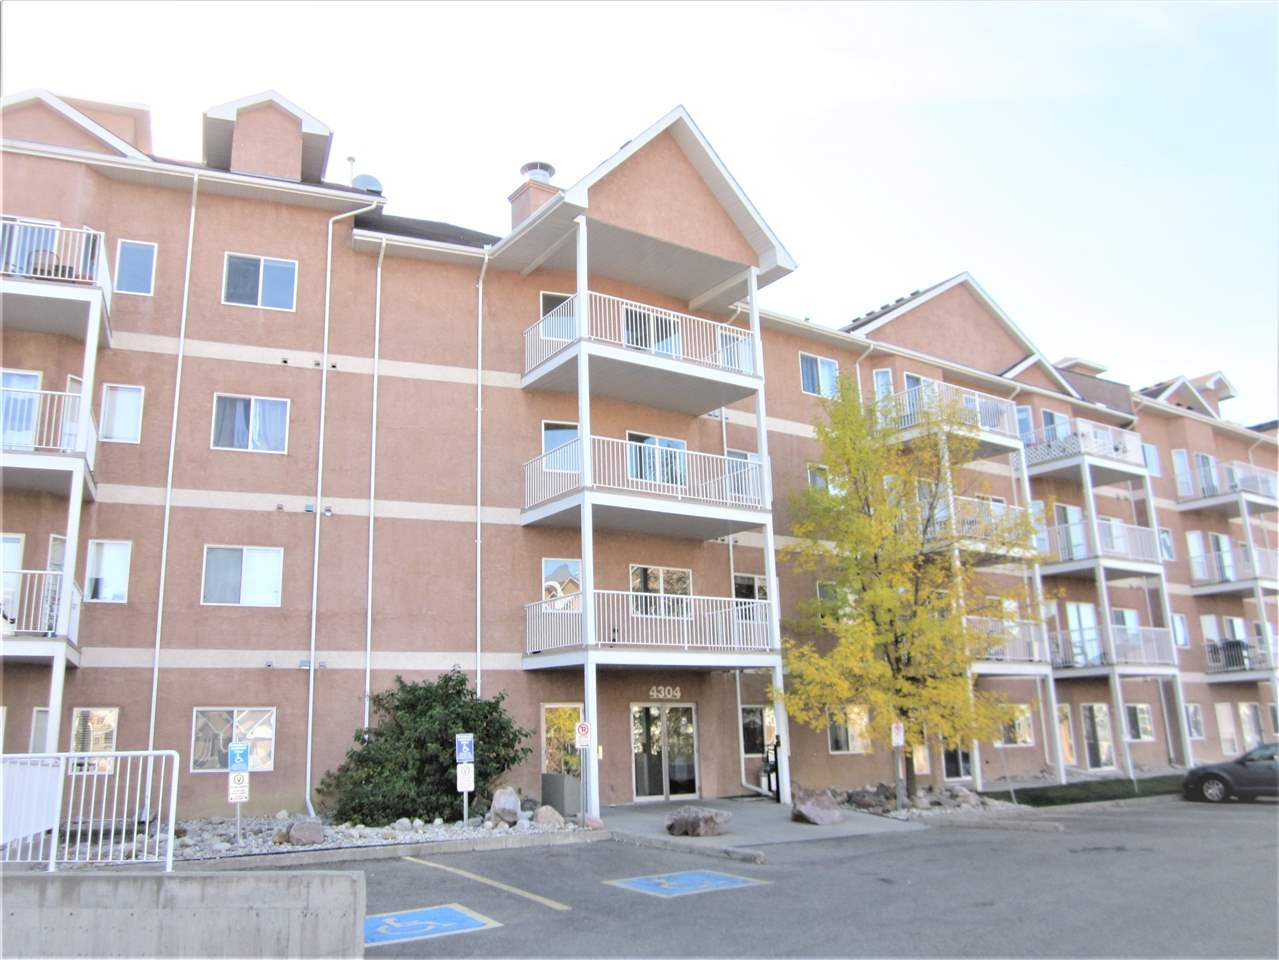 Top floor open and spacious 1,019 sq.ft. two bedrooms and two baths condo unit. Beautiful laminate flooring in the large living room with bay windows and patio door access to the Southeast facing balcony. Lovely U-shaped kitchen has ample light colour cabinets and extended breakfast bar. Spacious dining area. Master bedroom has walk-through closet and 3 pcs. ensuite. Insuite laundry and insuite storage room. One assigned underground parking stall. Amenities include car wash, exercise room, and social room. Conveniently located just steps away from the Clareview LRT Station, close to shopping, and Clareview Community Recreation Centre.